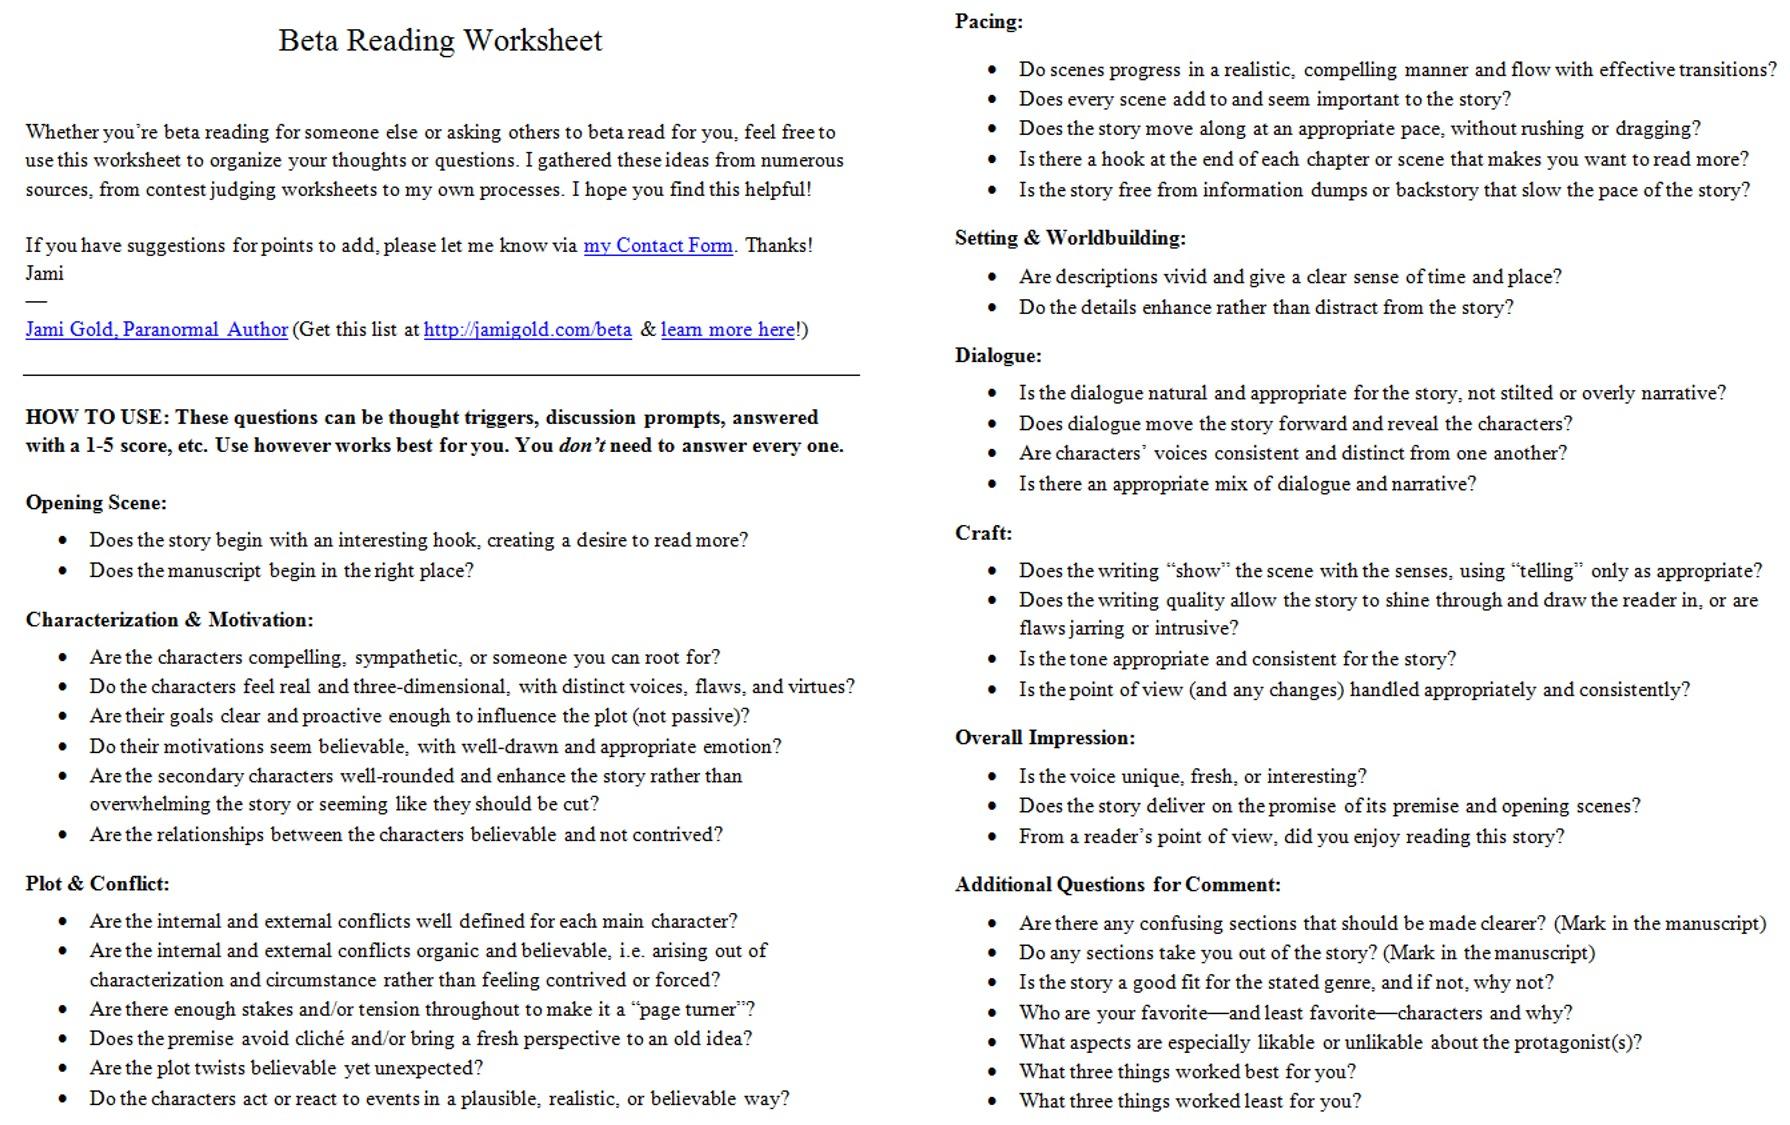 Aldiablosus  Nice Worksheets For Writers  Jami Gold Paranormal Author With Marvelous Screen Shot Of The Twopage Beta Reading Worksheet With Enchanting Rd Grade Math Addition Worksheets Also Telling Time To  Minutes Worksheet In Addition Pemdas Worksheets Th Grade And Measurement Worksheets For Nd Grade As Well As Multiplication Number Line Worksheets Additionally How To Add A Worksheet In Excel From Jamigoldcom With Aldiablosus  Marvelous Worksheets For Writers  Jami Gold Paranormal Author With Enchanting Screen Shot Of The Twopage Beta Reading Worksheet And Nice Rd Grade Math Addition Worksheets Also Telling Time To  Minutes Worksheet In Addition Pemdas Worksheets Th Grade From Jamigoldcom